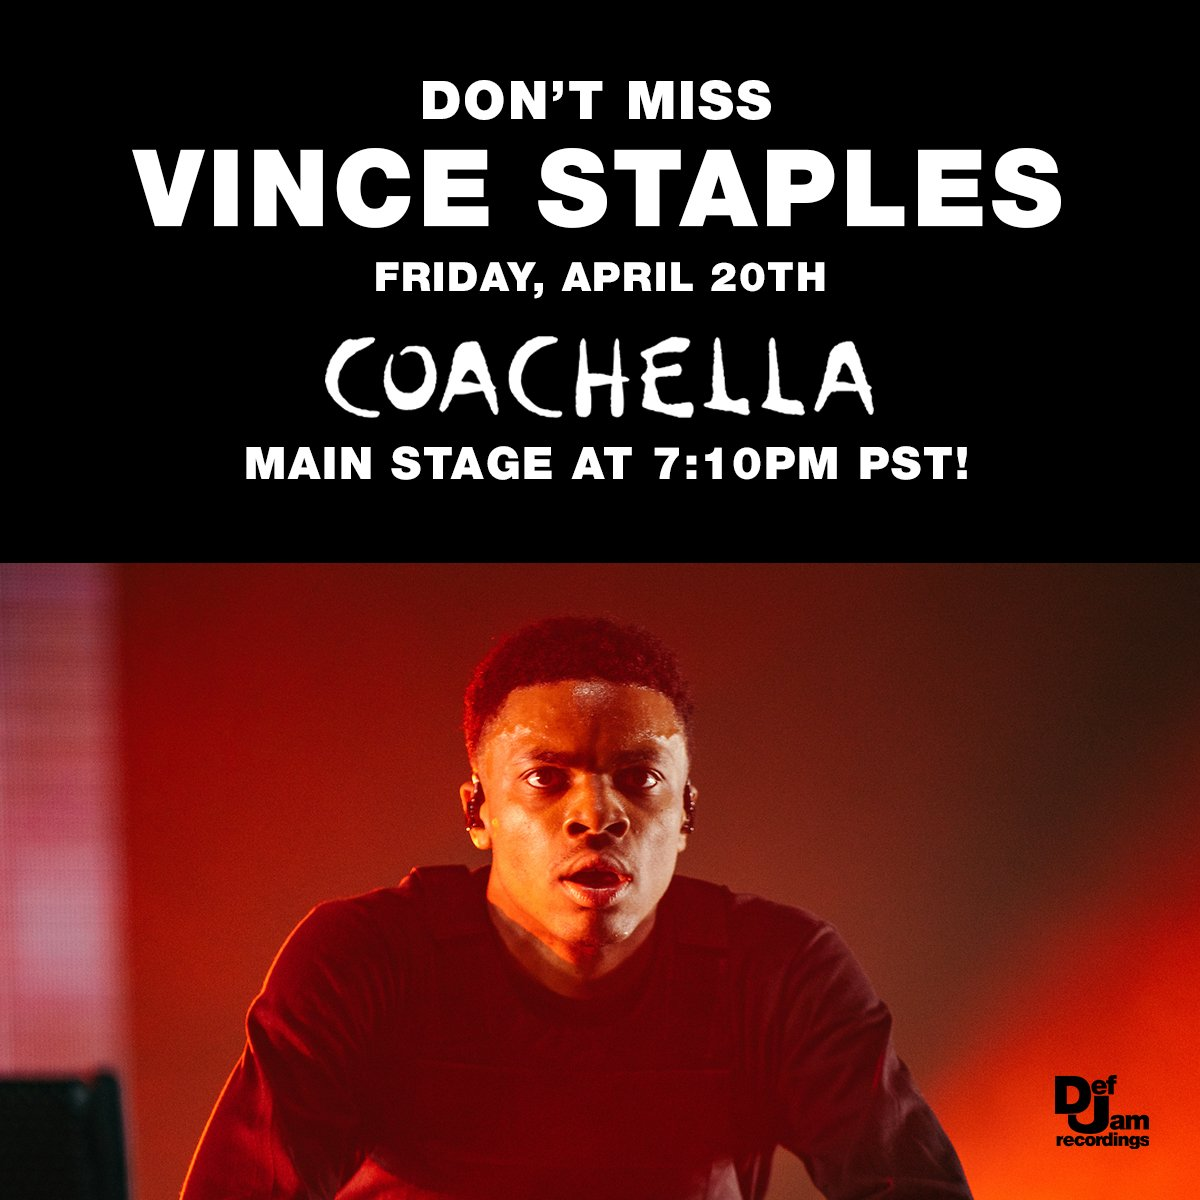 Who's ready for round 2 tomorrow with @vincestaples?